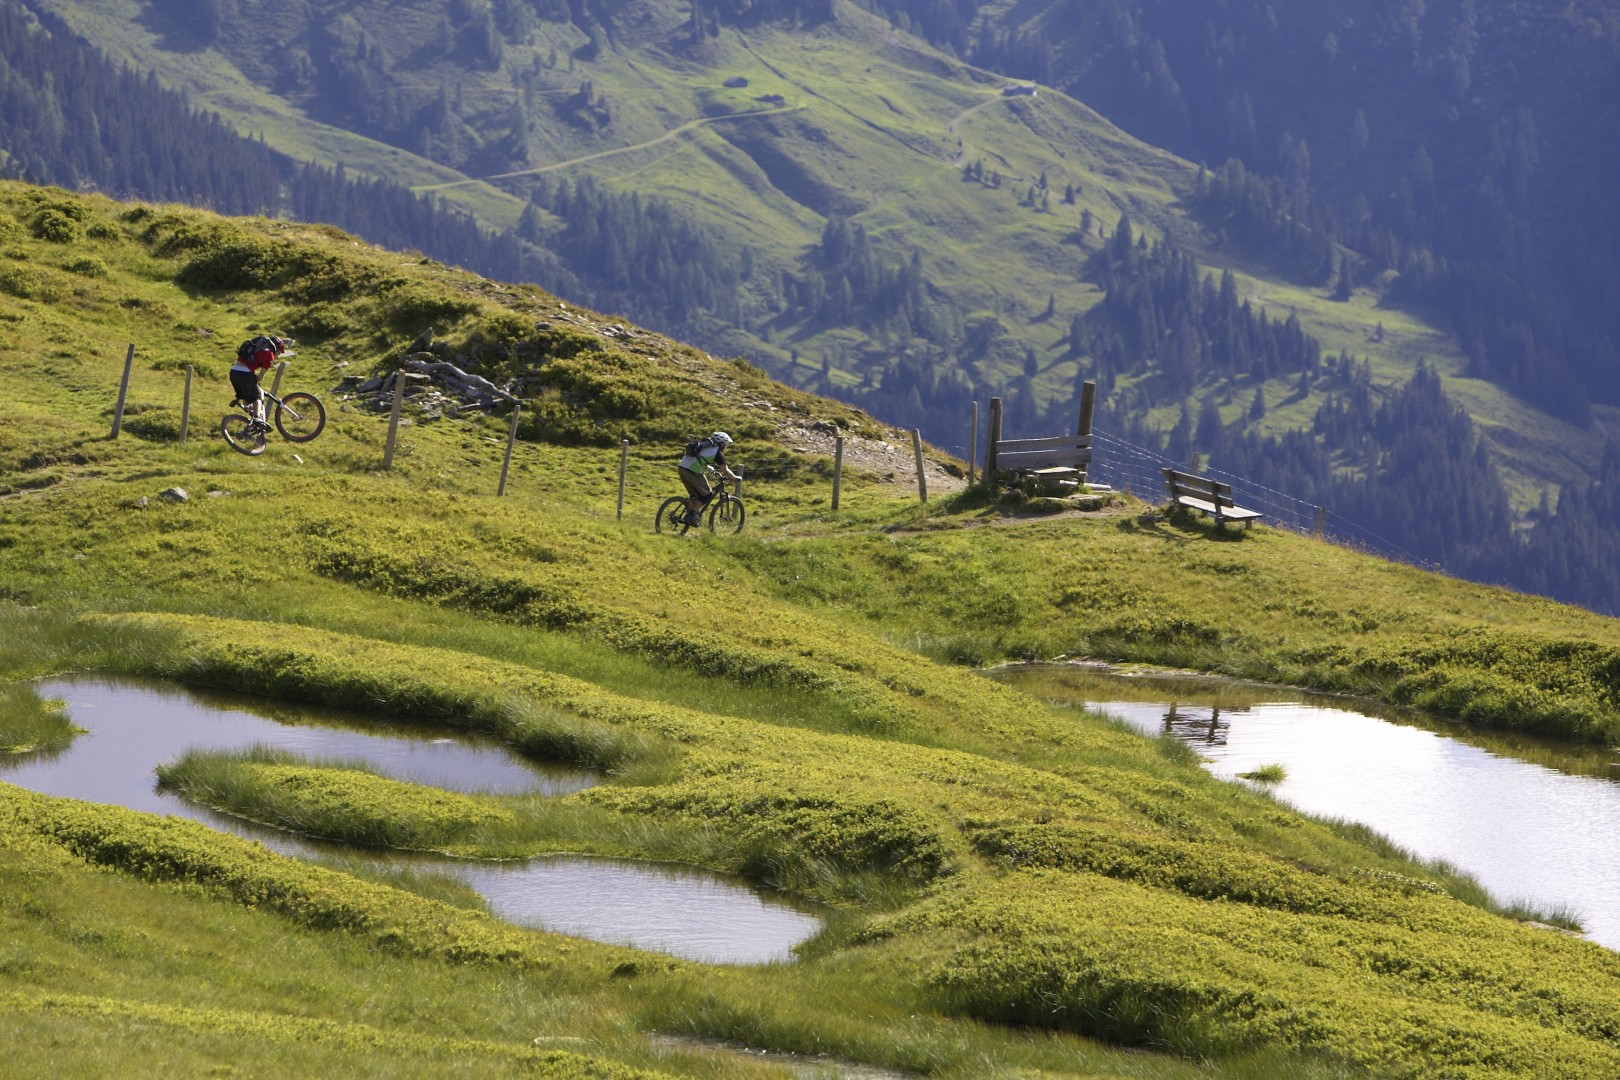 Mountainbiken at the Bikecircus Saalbach-Hinterglemm